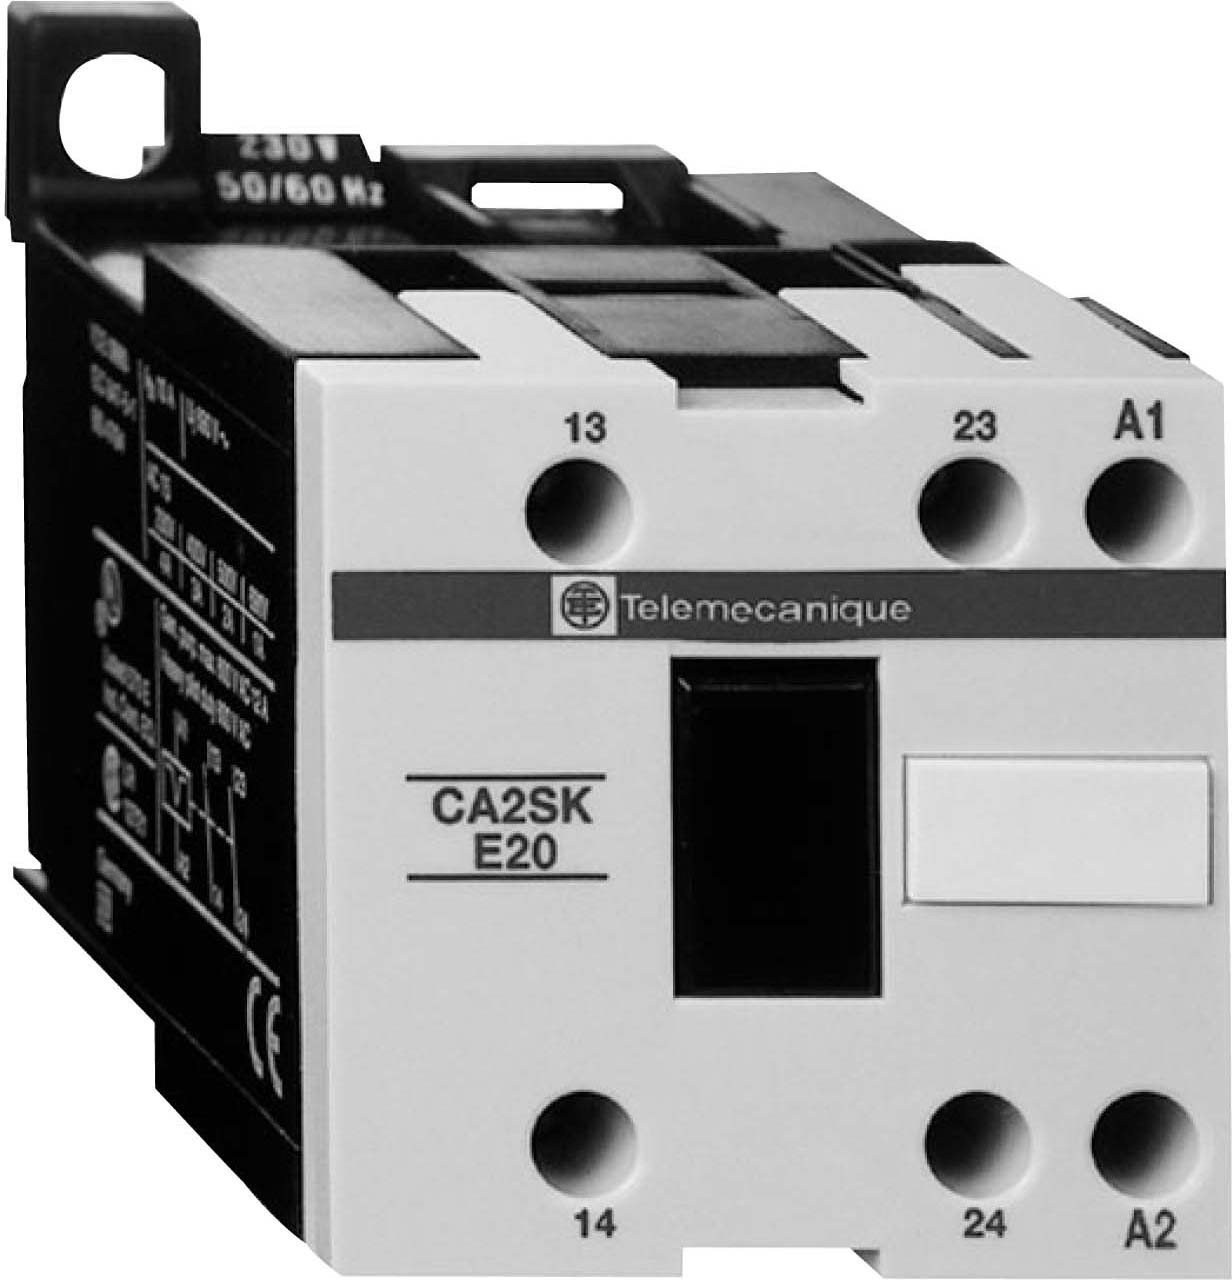 Midwest Control CA2SKE20-T7 Schneider Electric Alternating Relay, 408V - 480V Operating Range, 14 Degree F - 122 Degree F Temperature Range